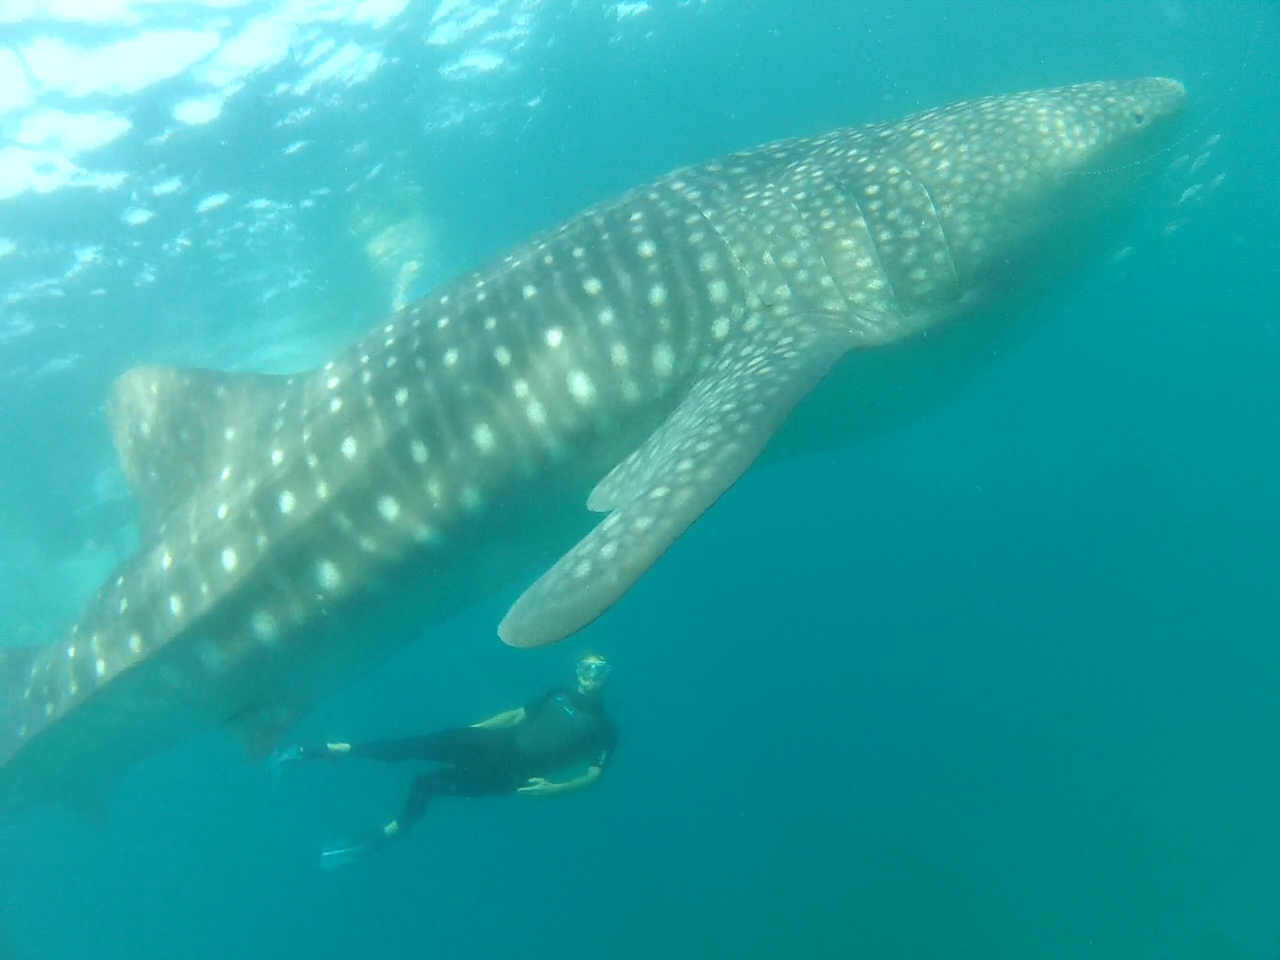 Chris_WhaleShark1.jpg